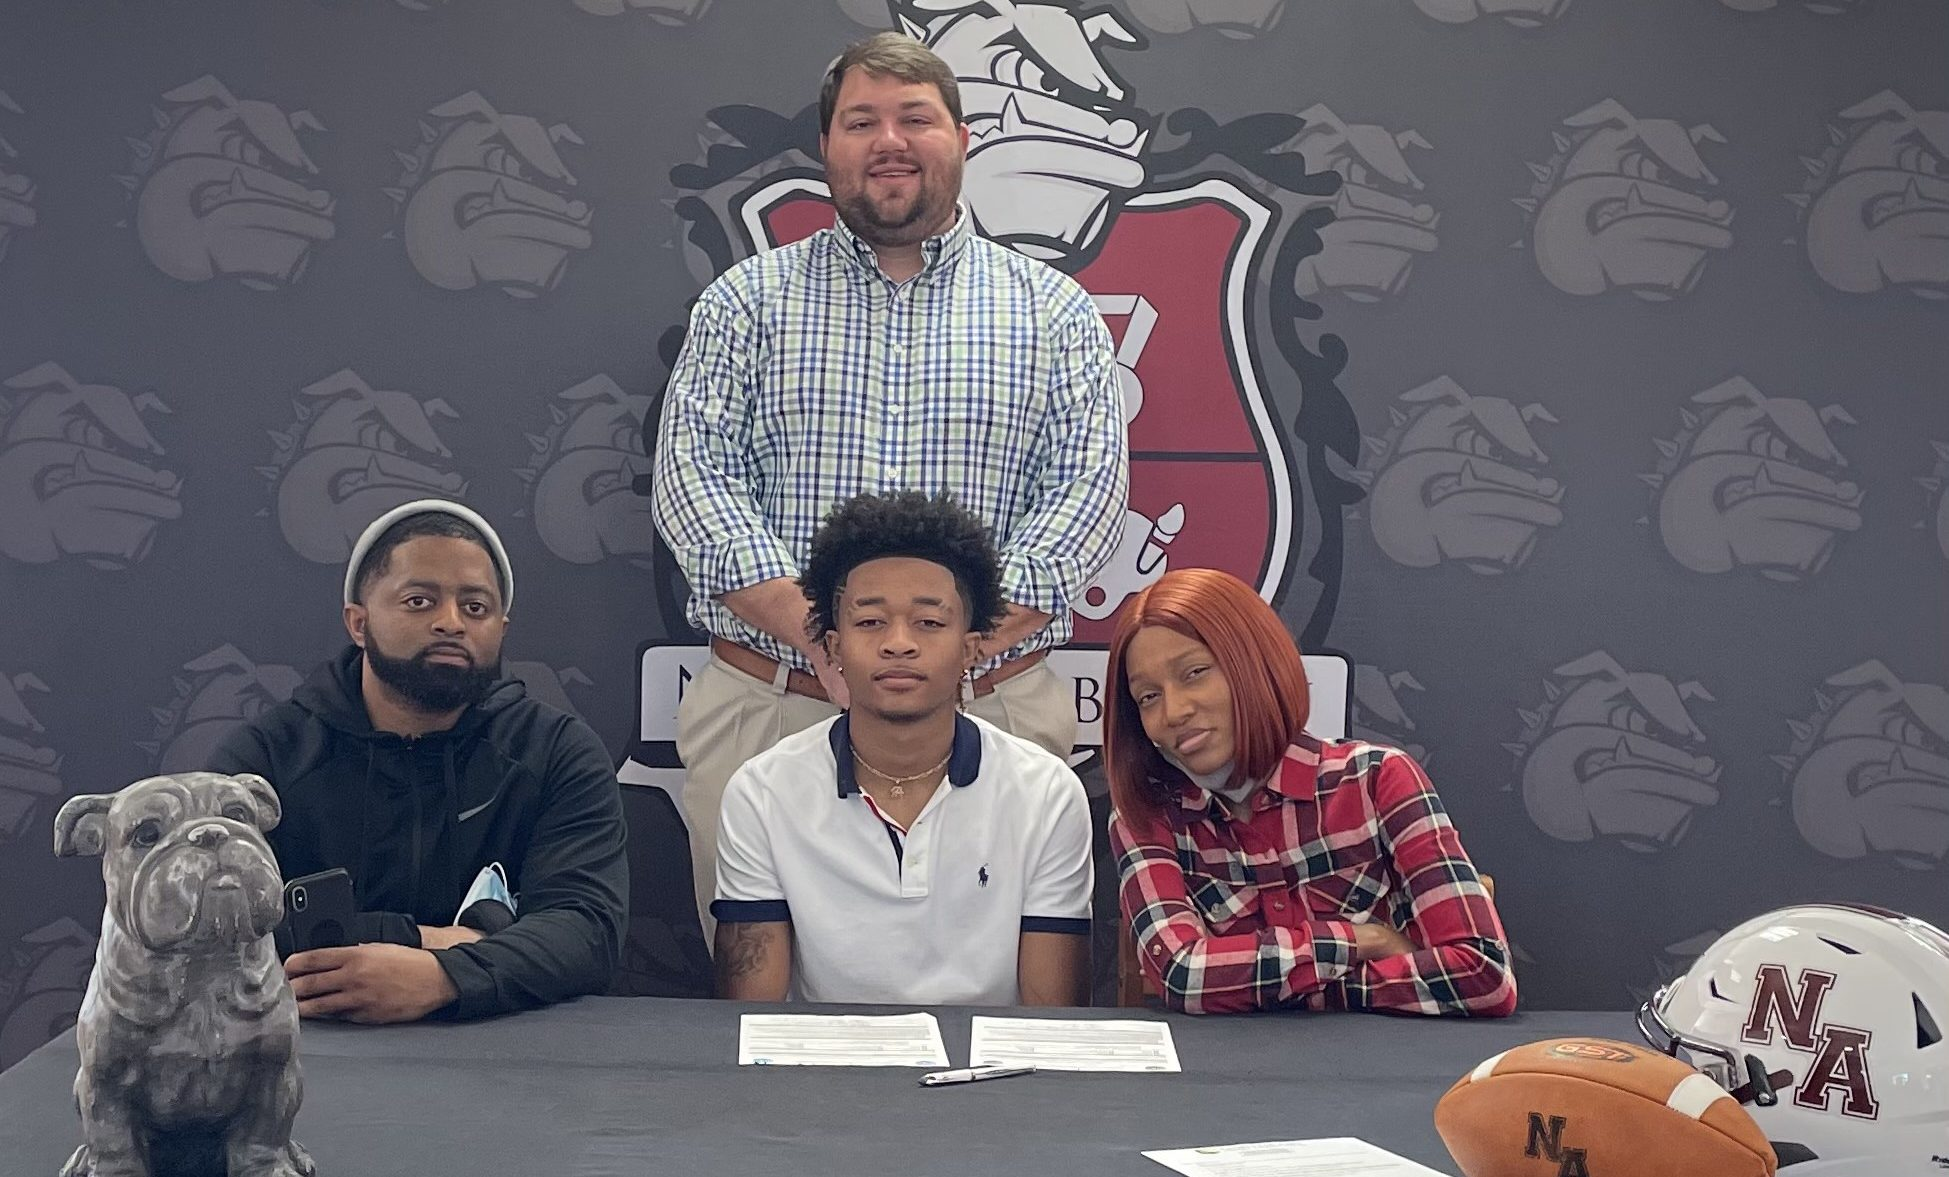 Isaiah Cohran with family and Coach Stubblefield - signing to play community college football